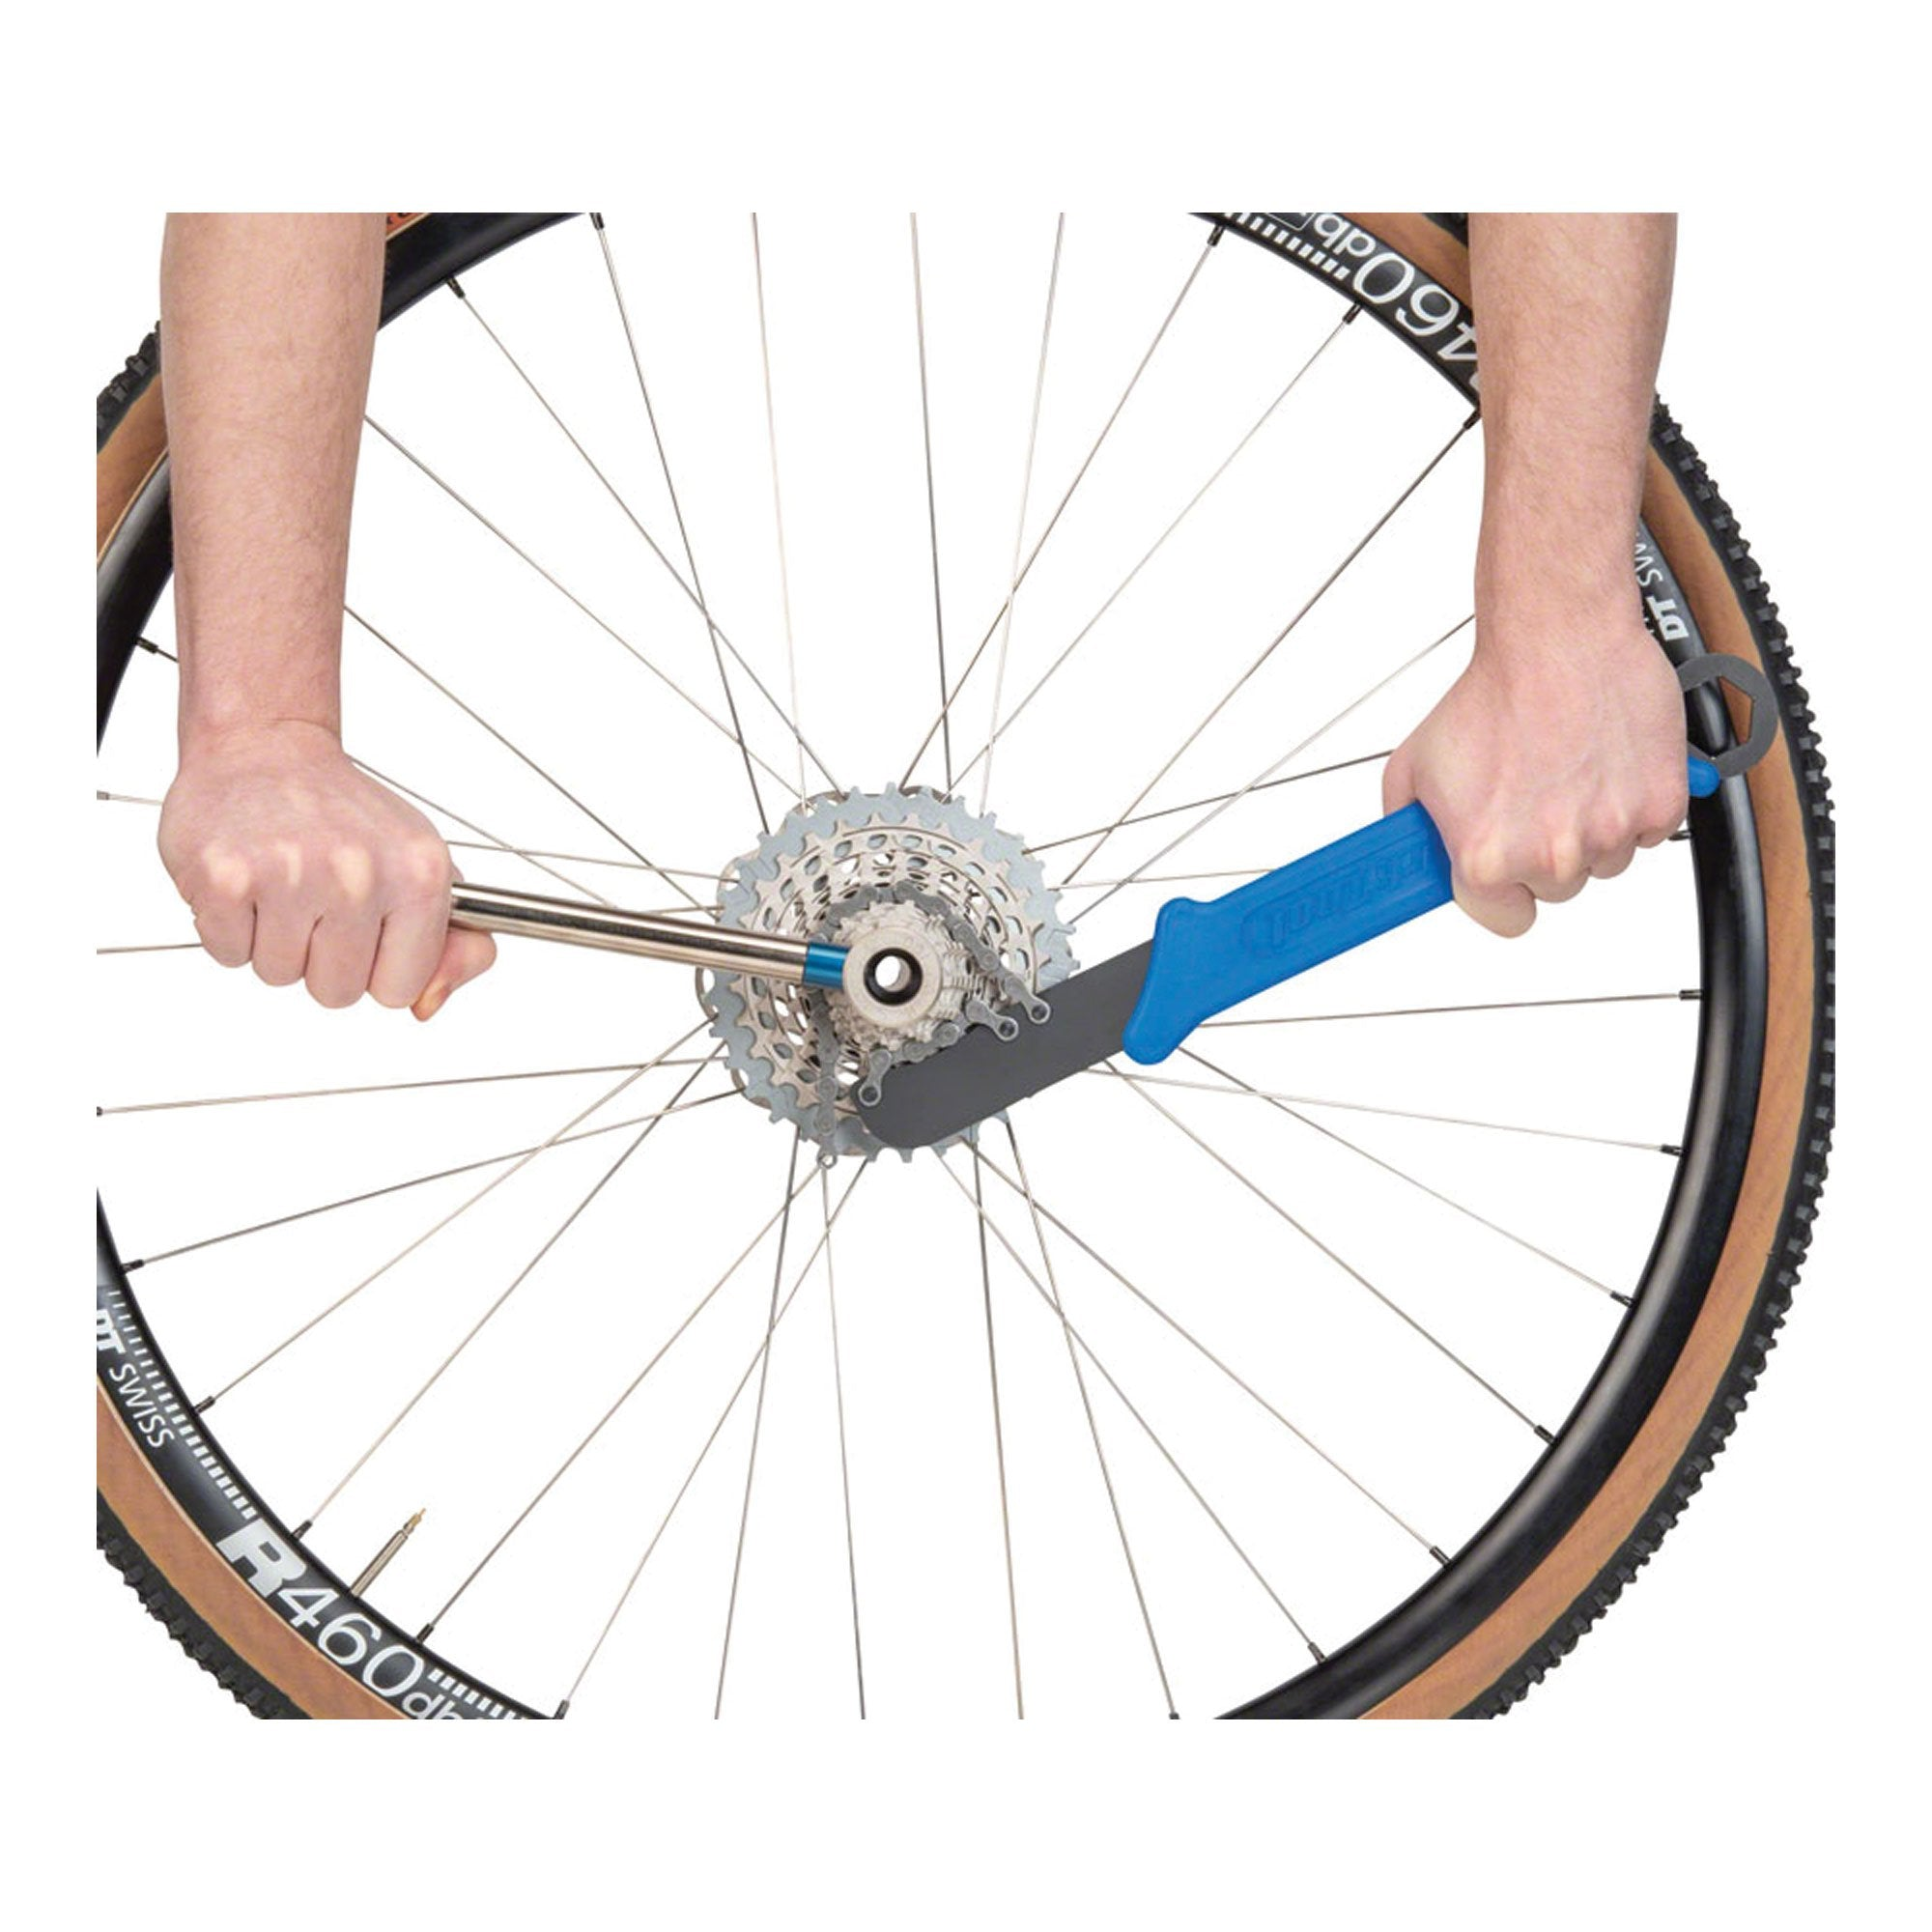 Park Tool SR-12.2 Chain Whip Sprocket Remover